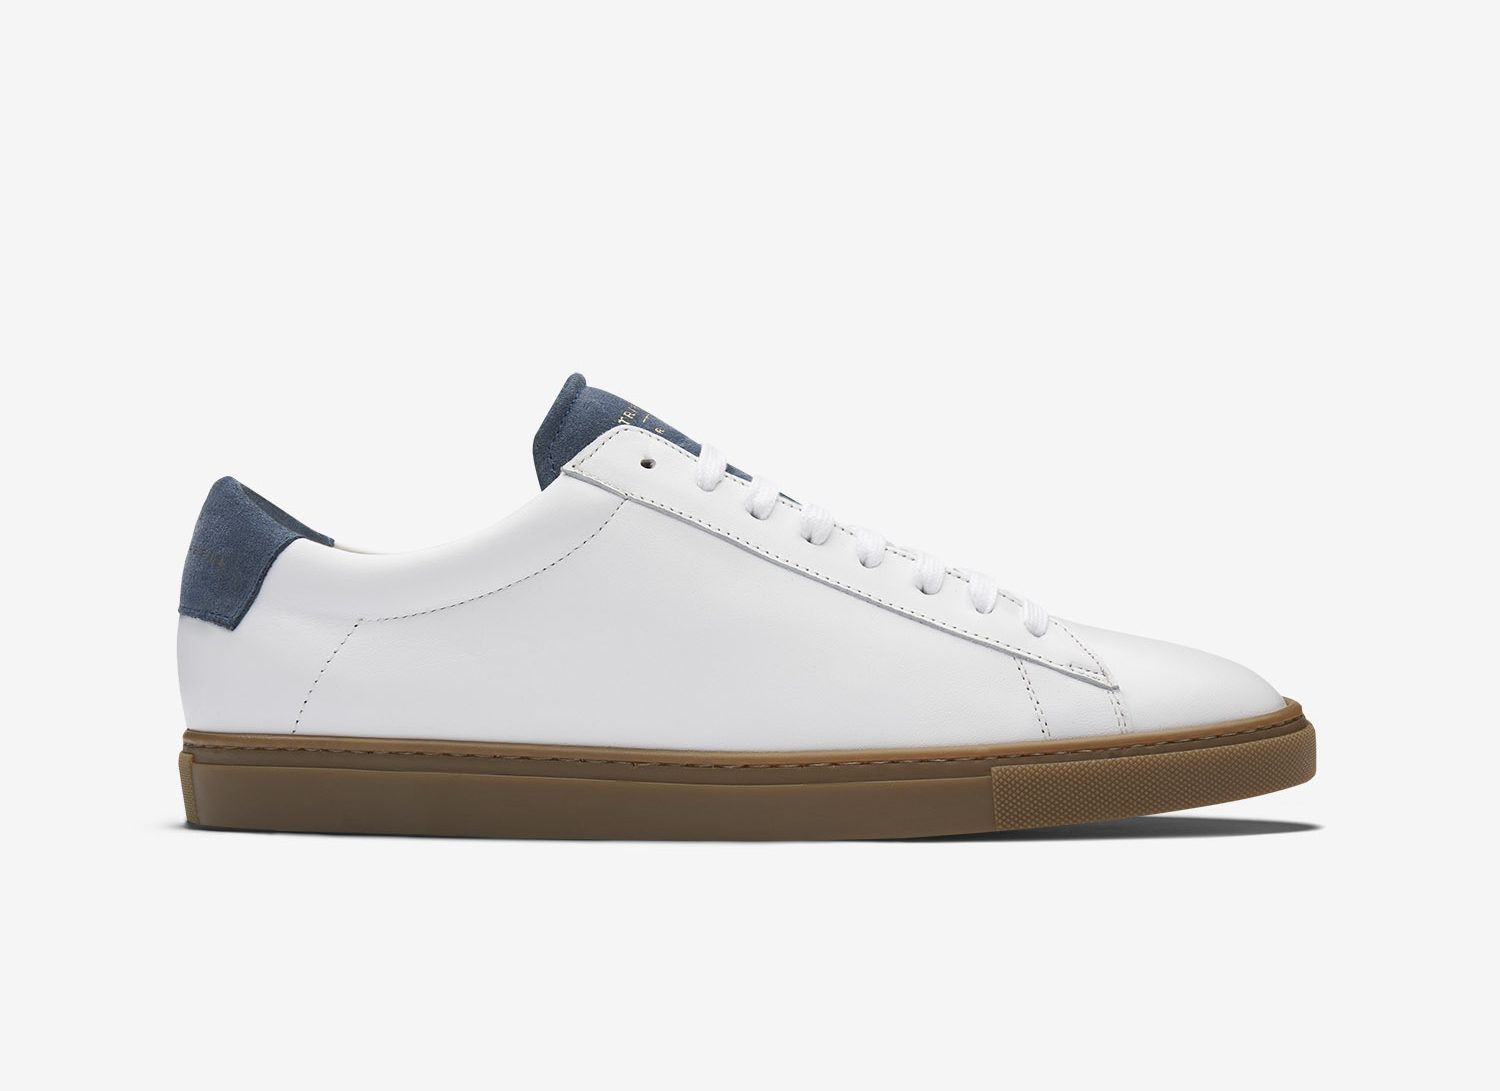 TRIWA x Oliver Cabell low 1